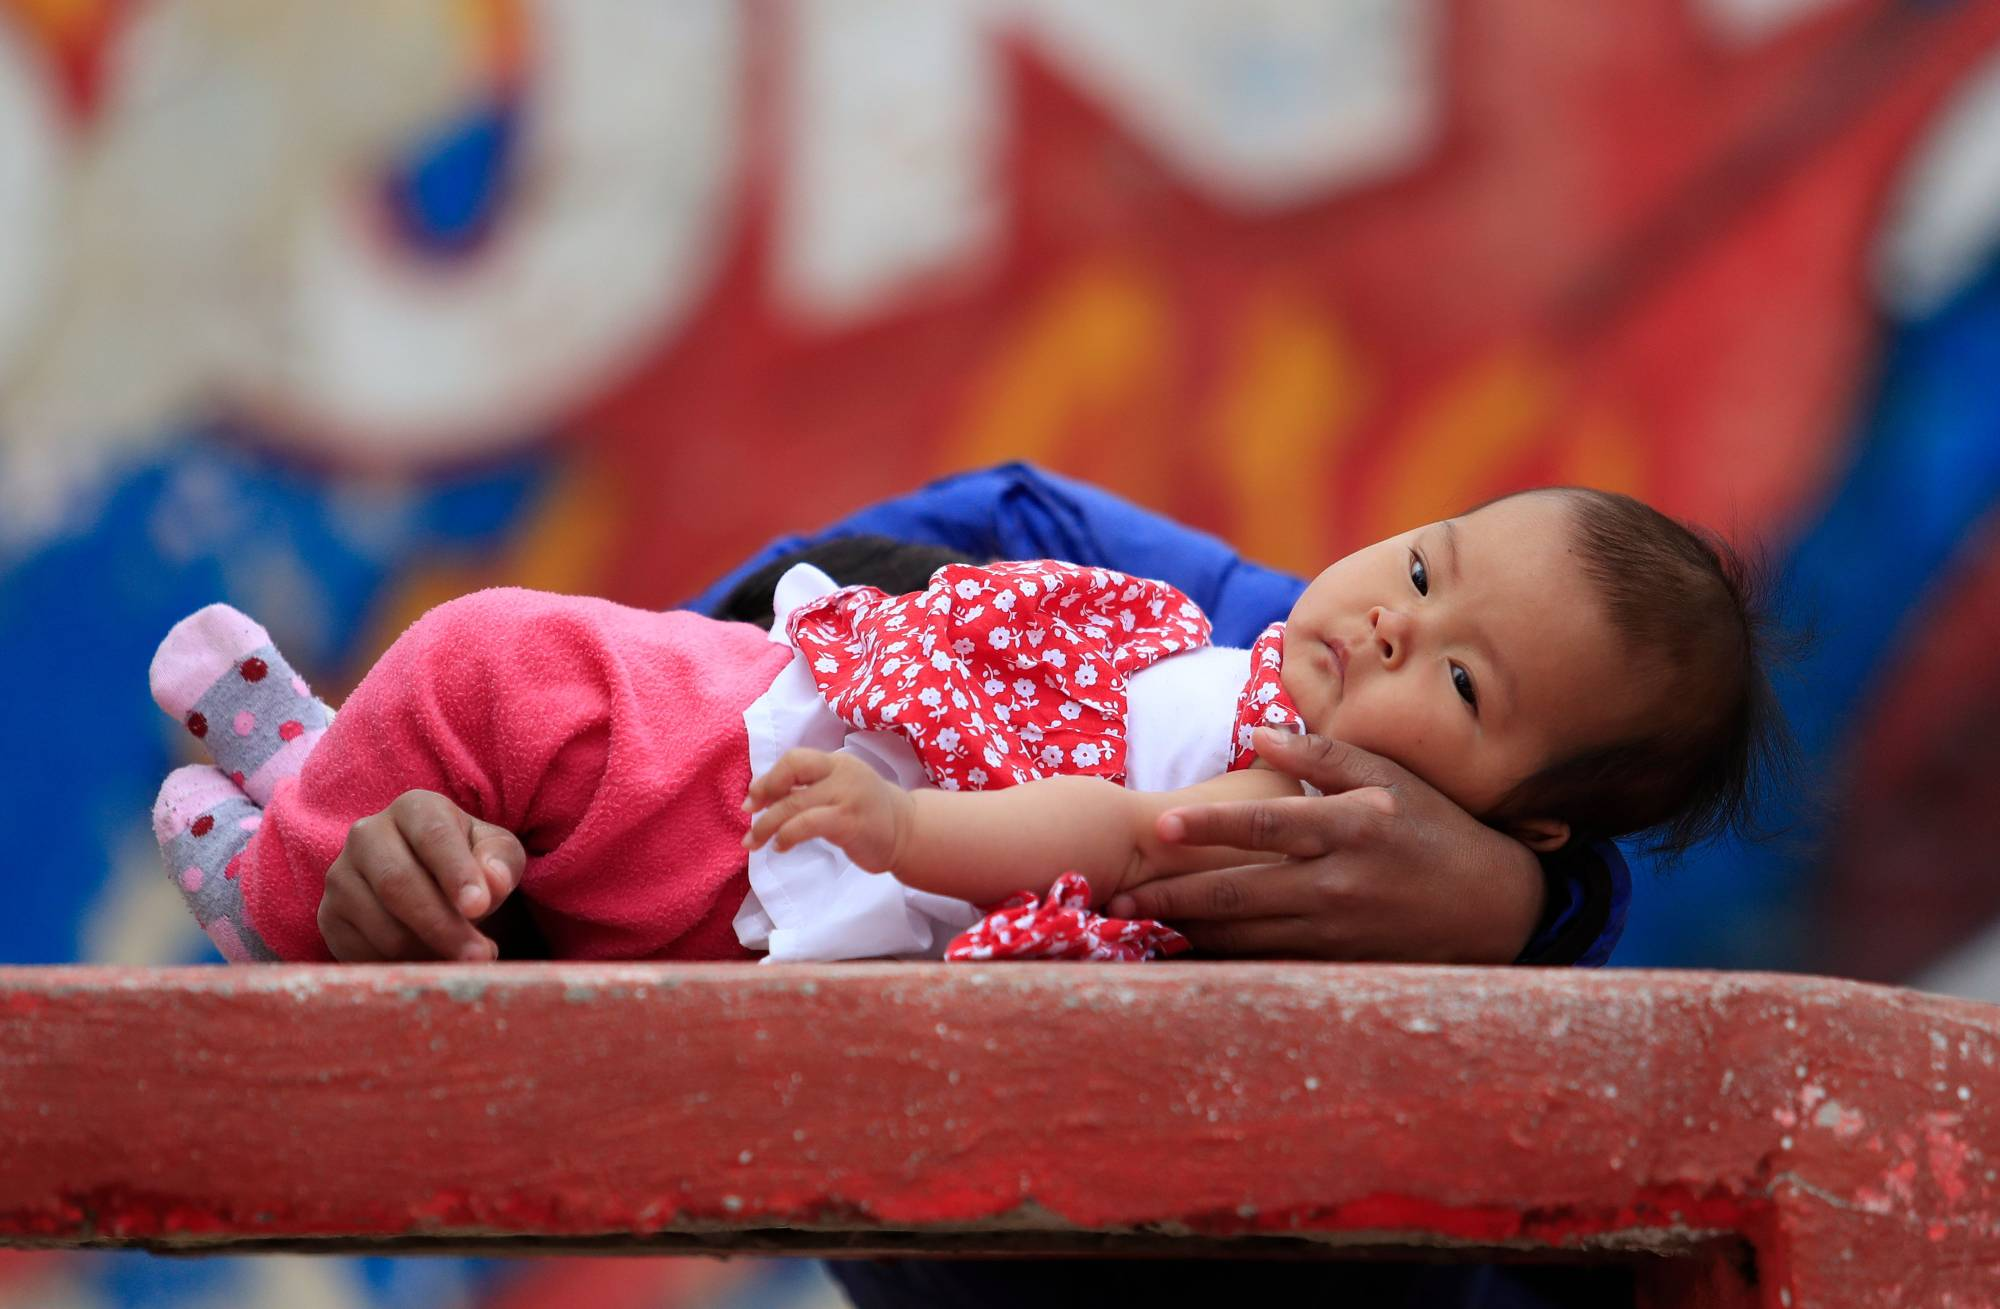 As fertility falls and life expectancy increases worldwide, the number of children under five is forecast to decline by more than 40 percent, from 681 million in 2017 to 401 million in 2100, a study found. | AFP-JIJI